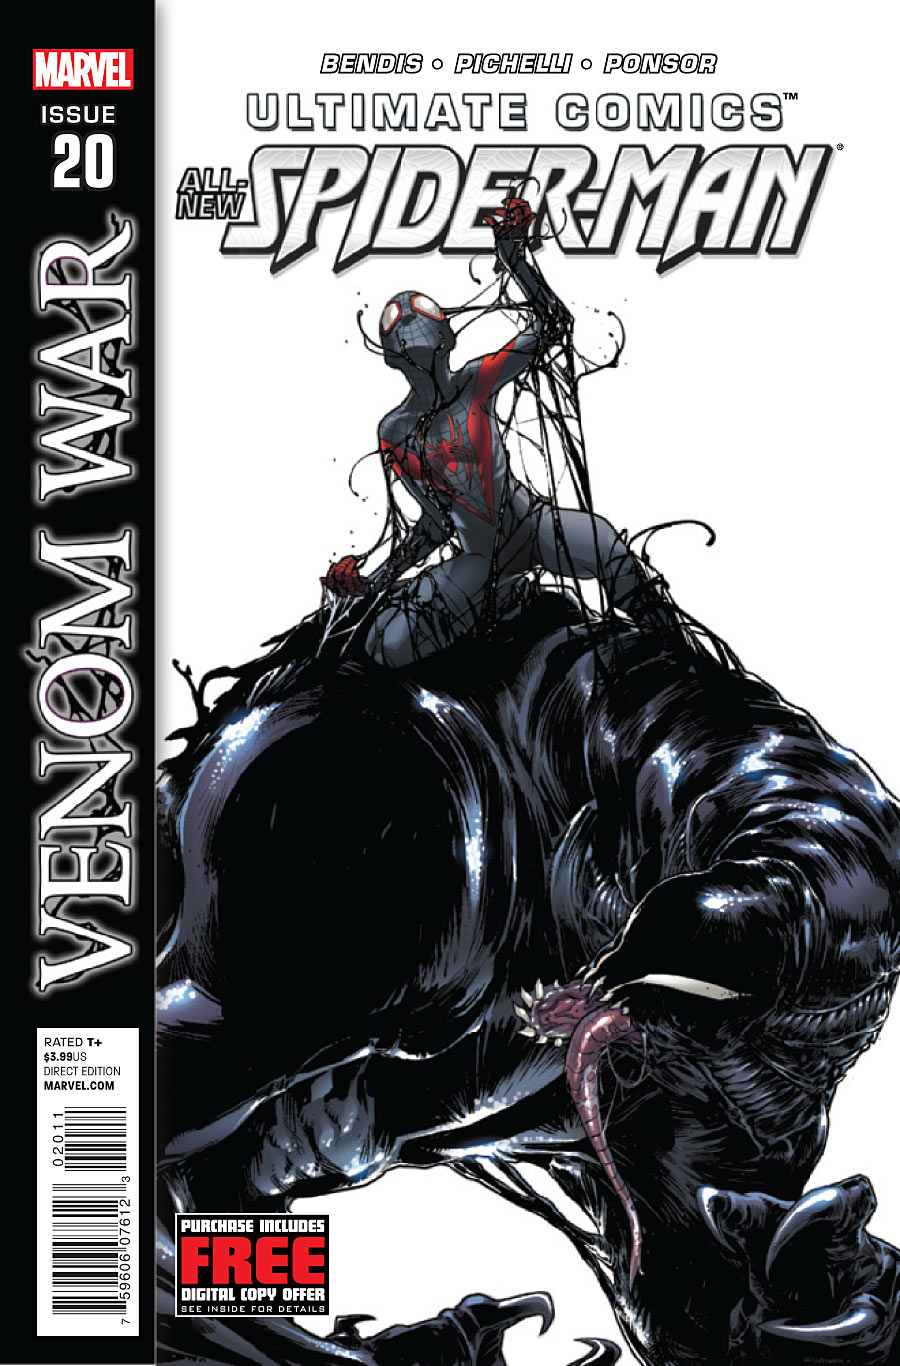 Ultimate Comics: Spider-Man #20 Publisher: Marvel Writer: Brian Michael Bendis Artist: Sara Pichelli Cover: Sara Pichelli & Christina Strain A longtime rivalry is reignited, but with two new players. A new symbiote...